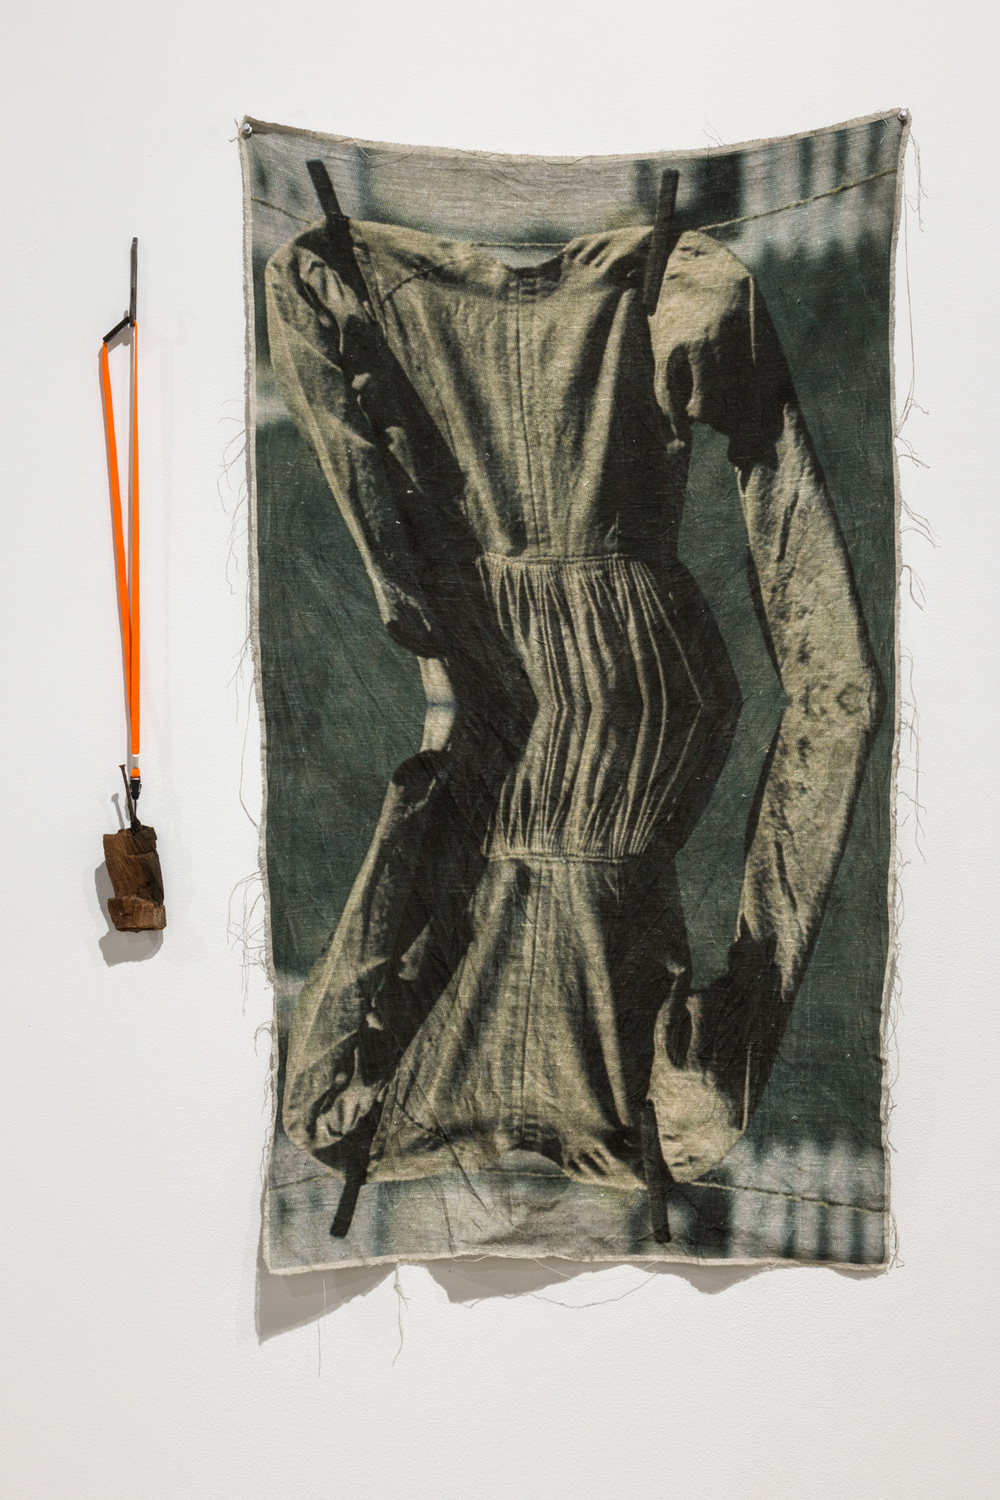 Allison SMITH Two of Wands driftwood phone with nail, polyester lanyard, wrought iron hook; archival pigment print on linen